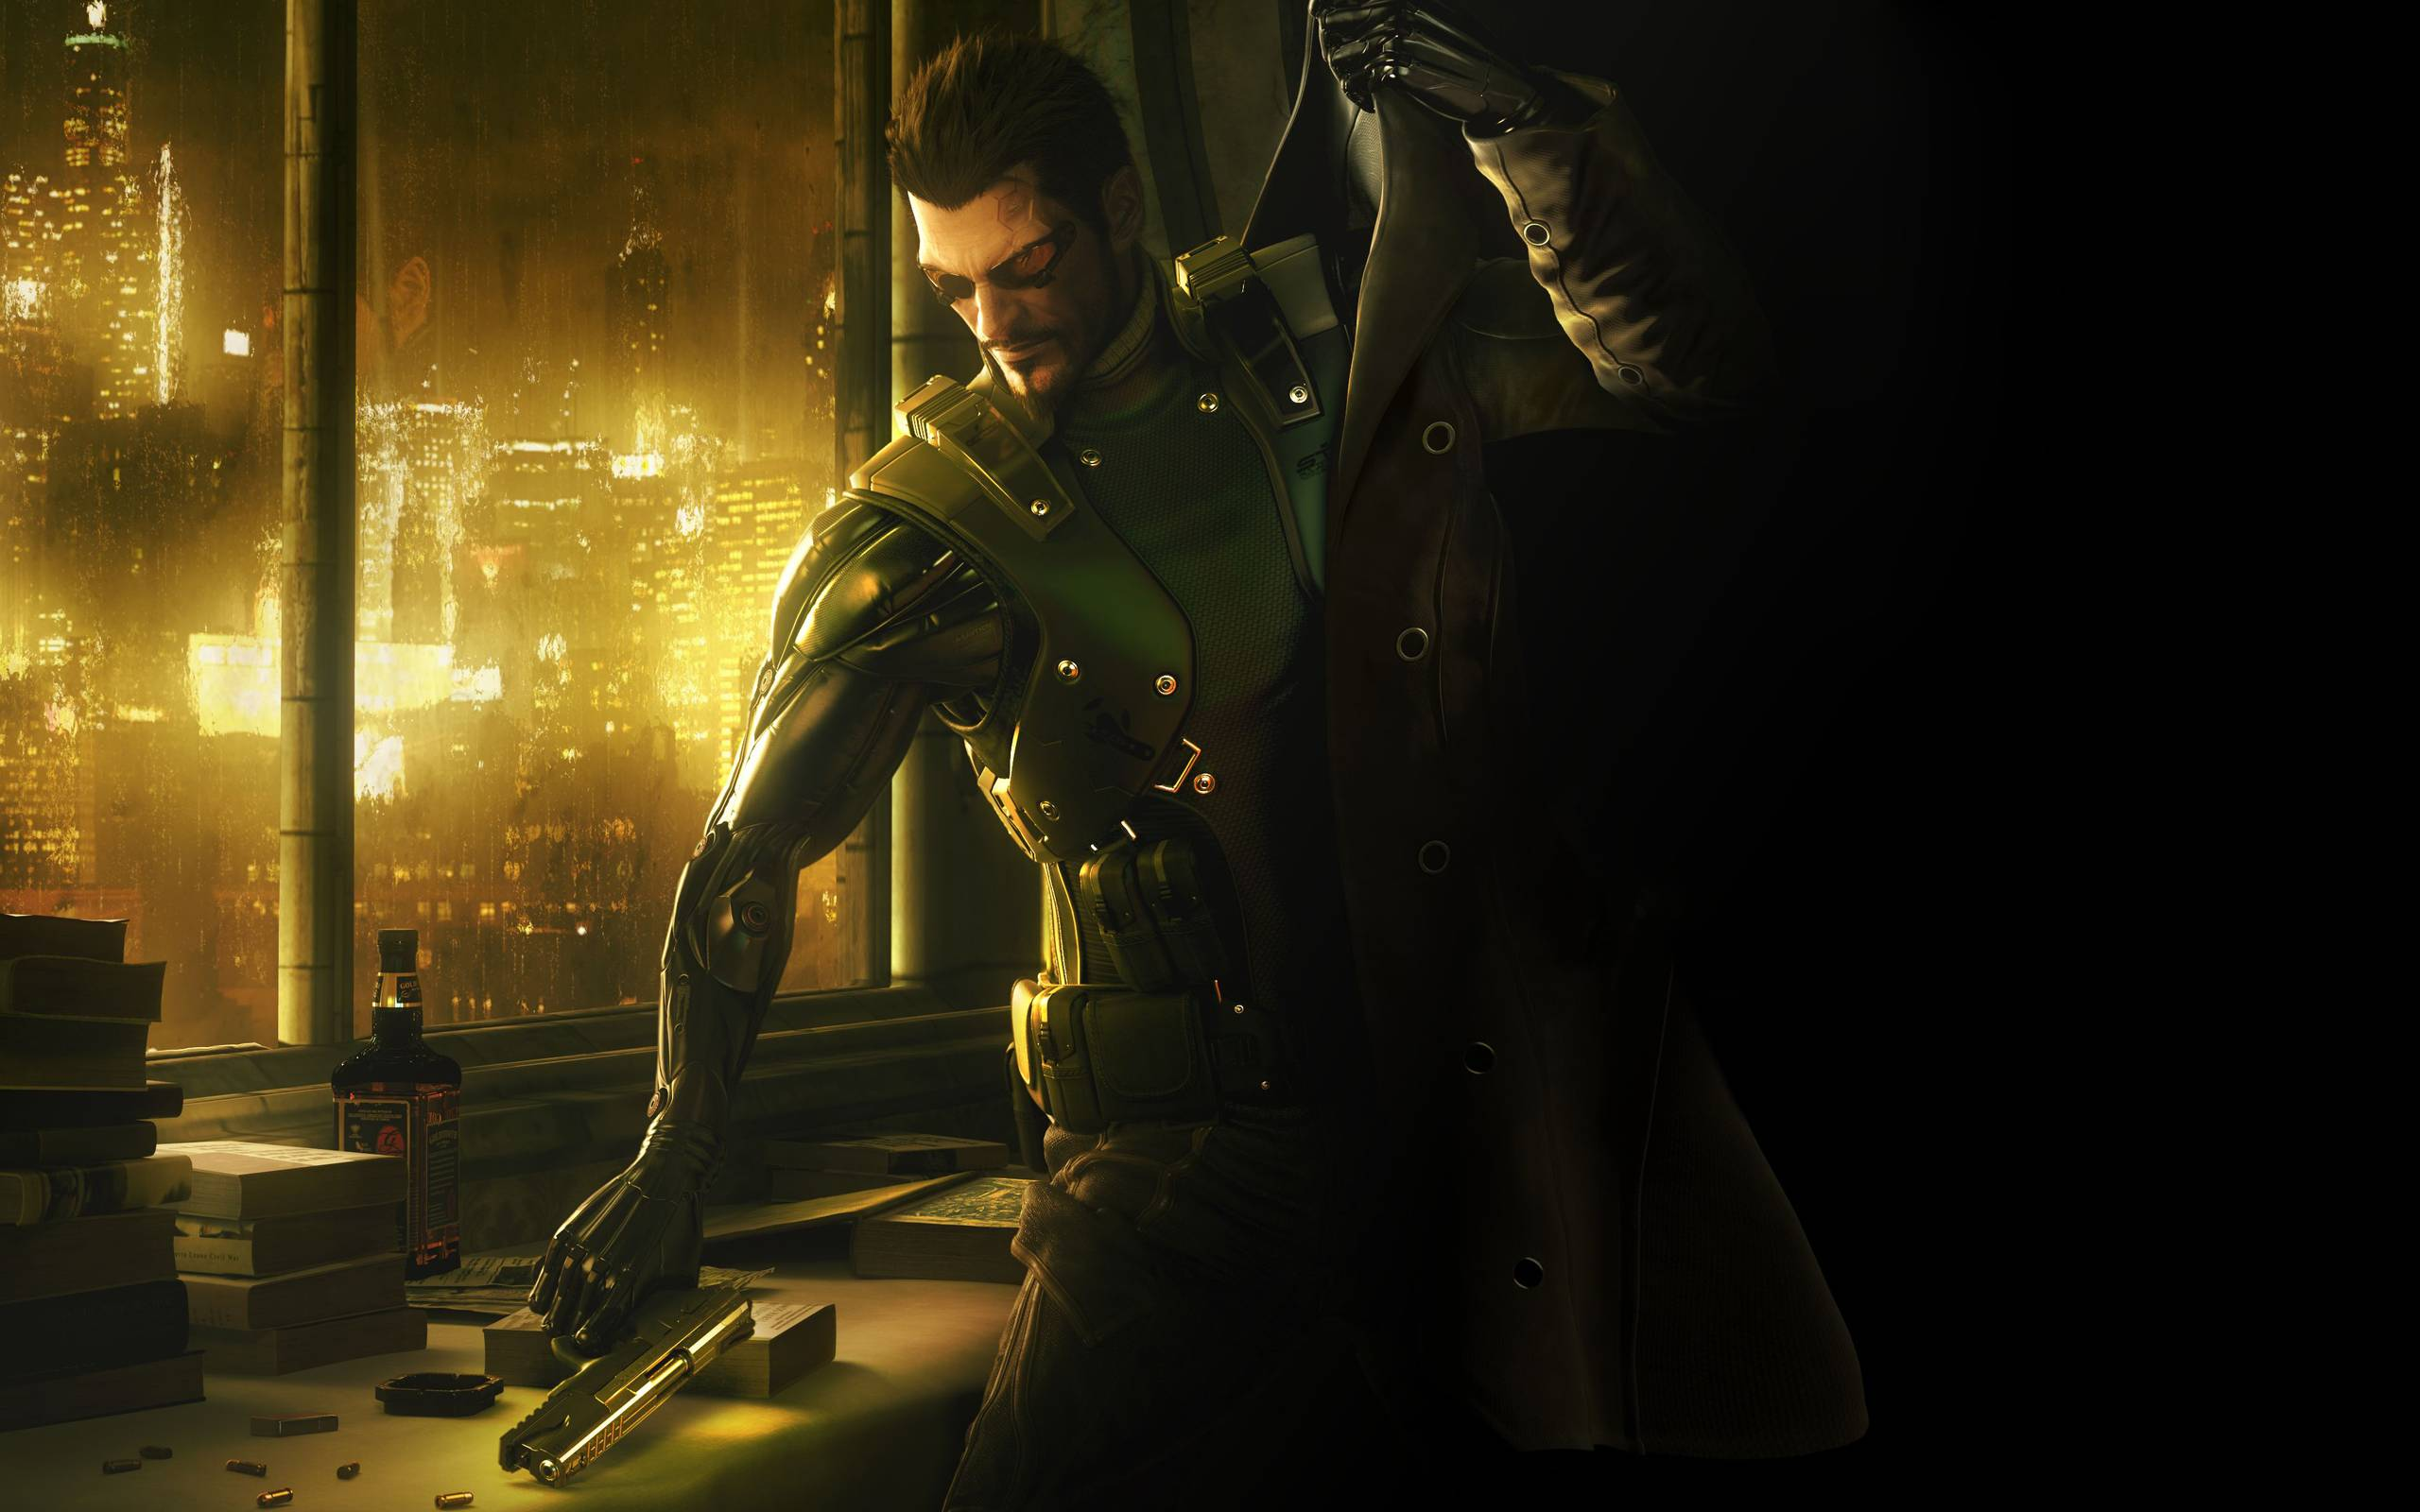 Deus Ex Human Revolution Wallpapers « Wallpaperz